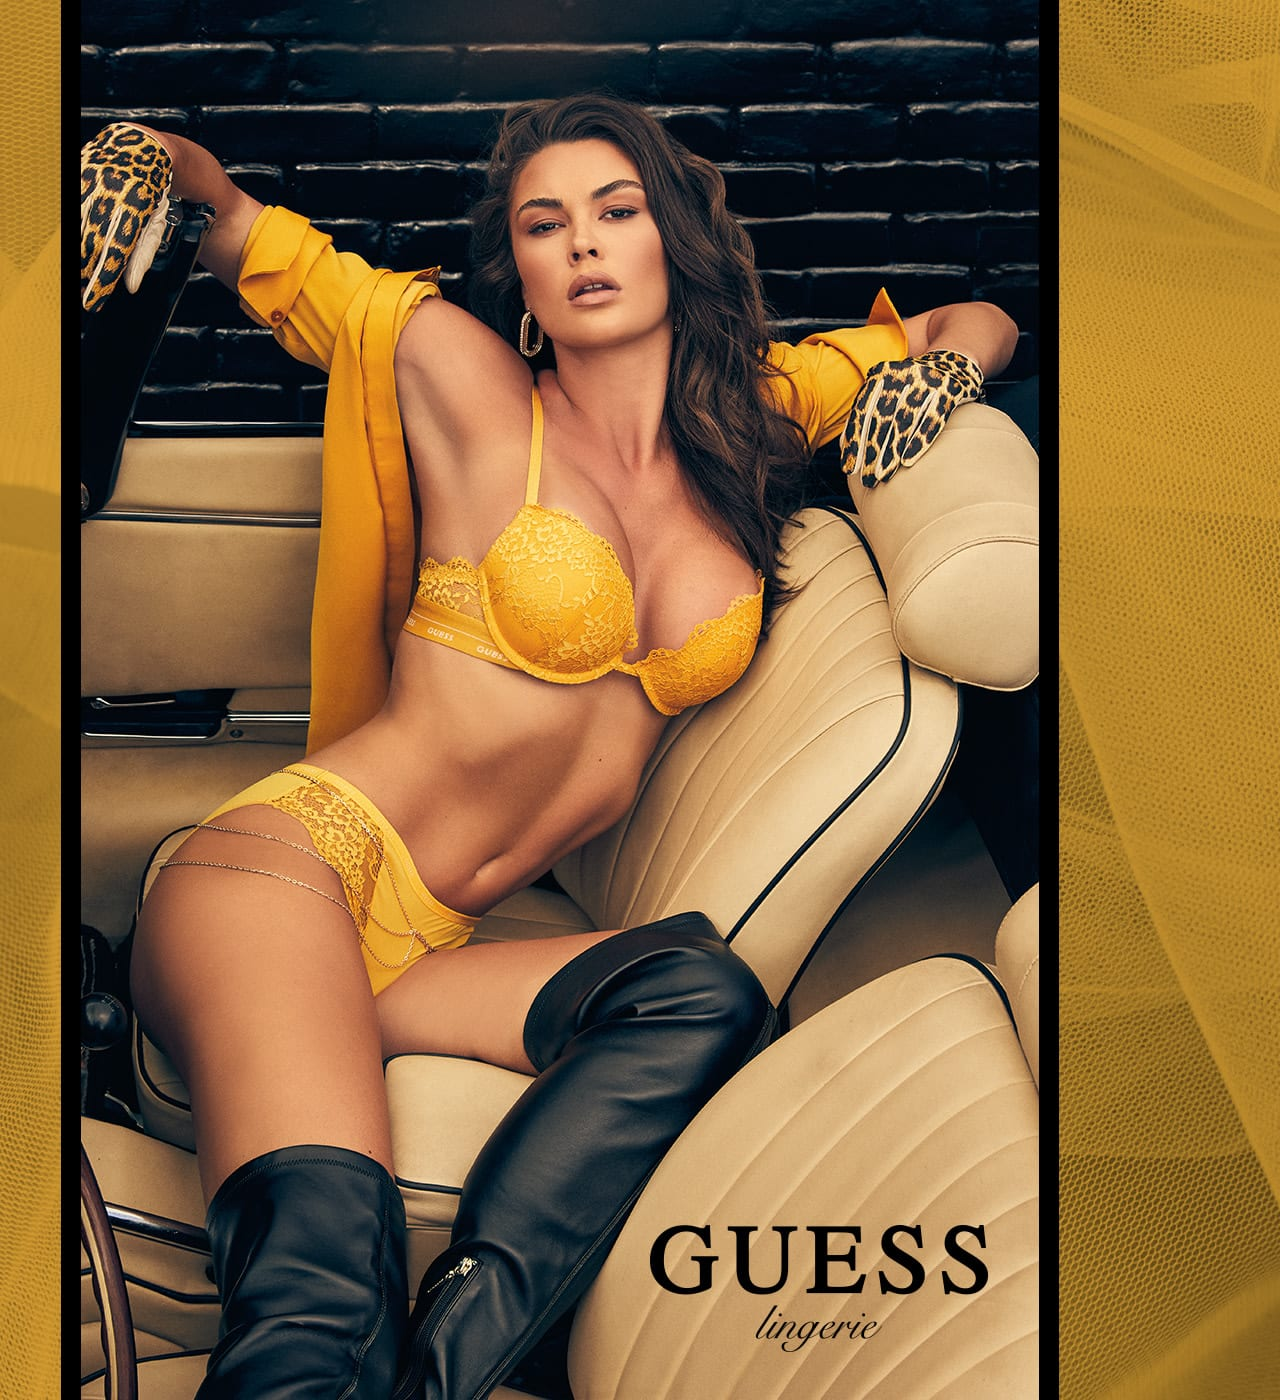 GUESS Lingerie lookbook 1